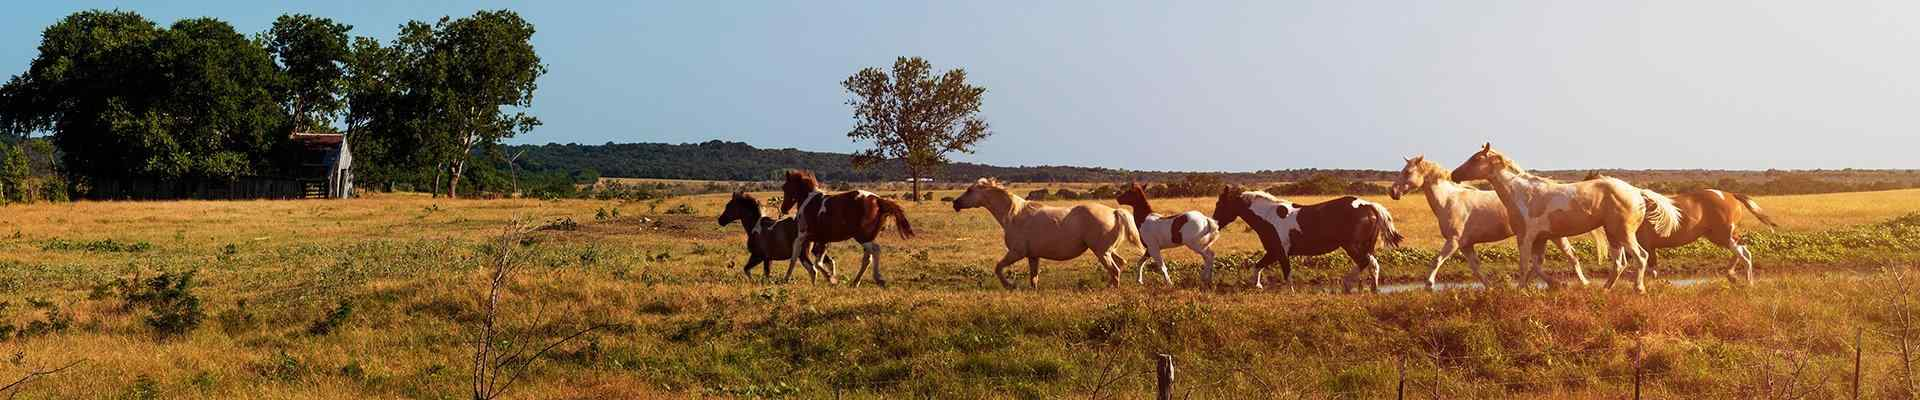 a field with horses in blue mound texas